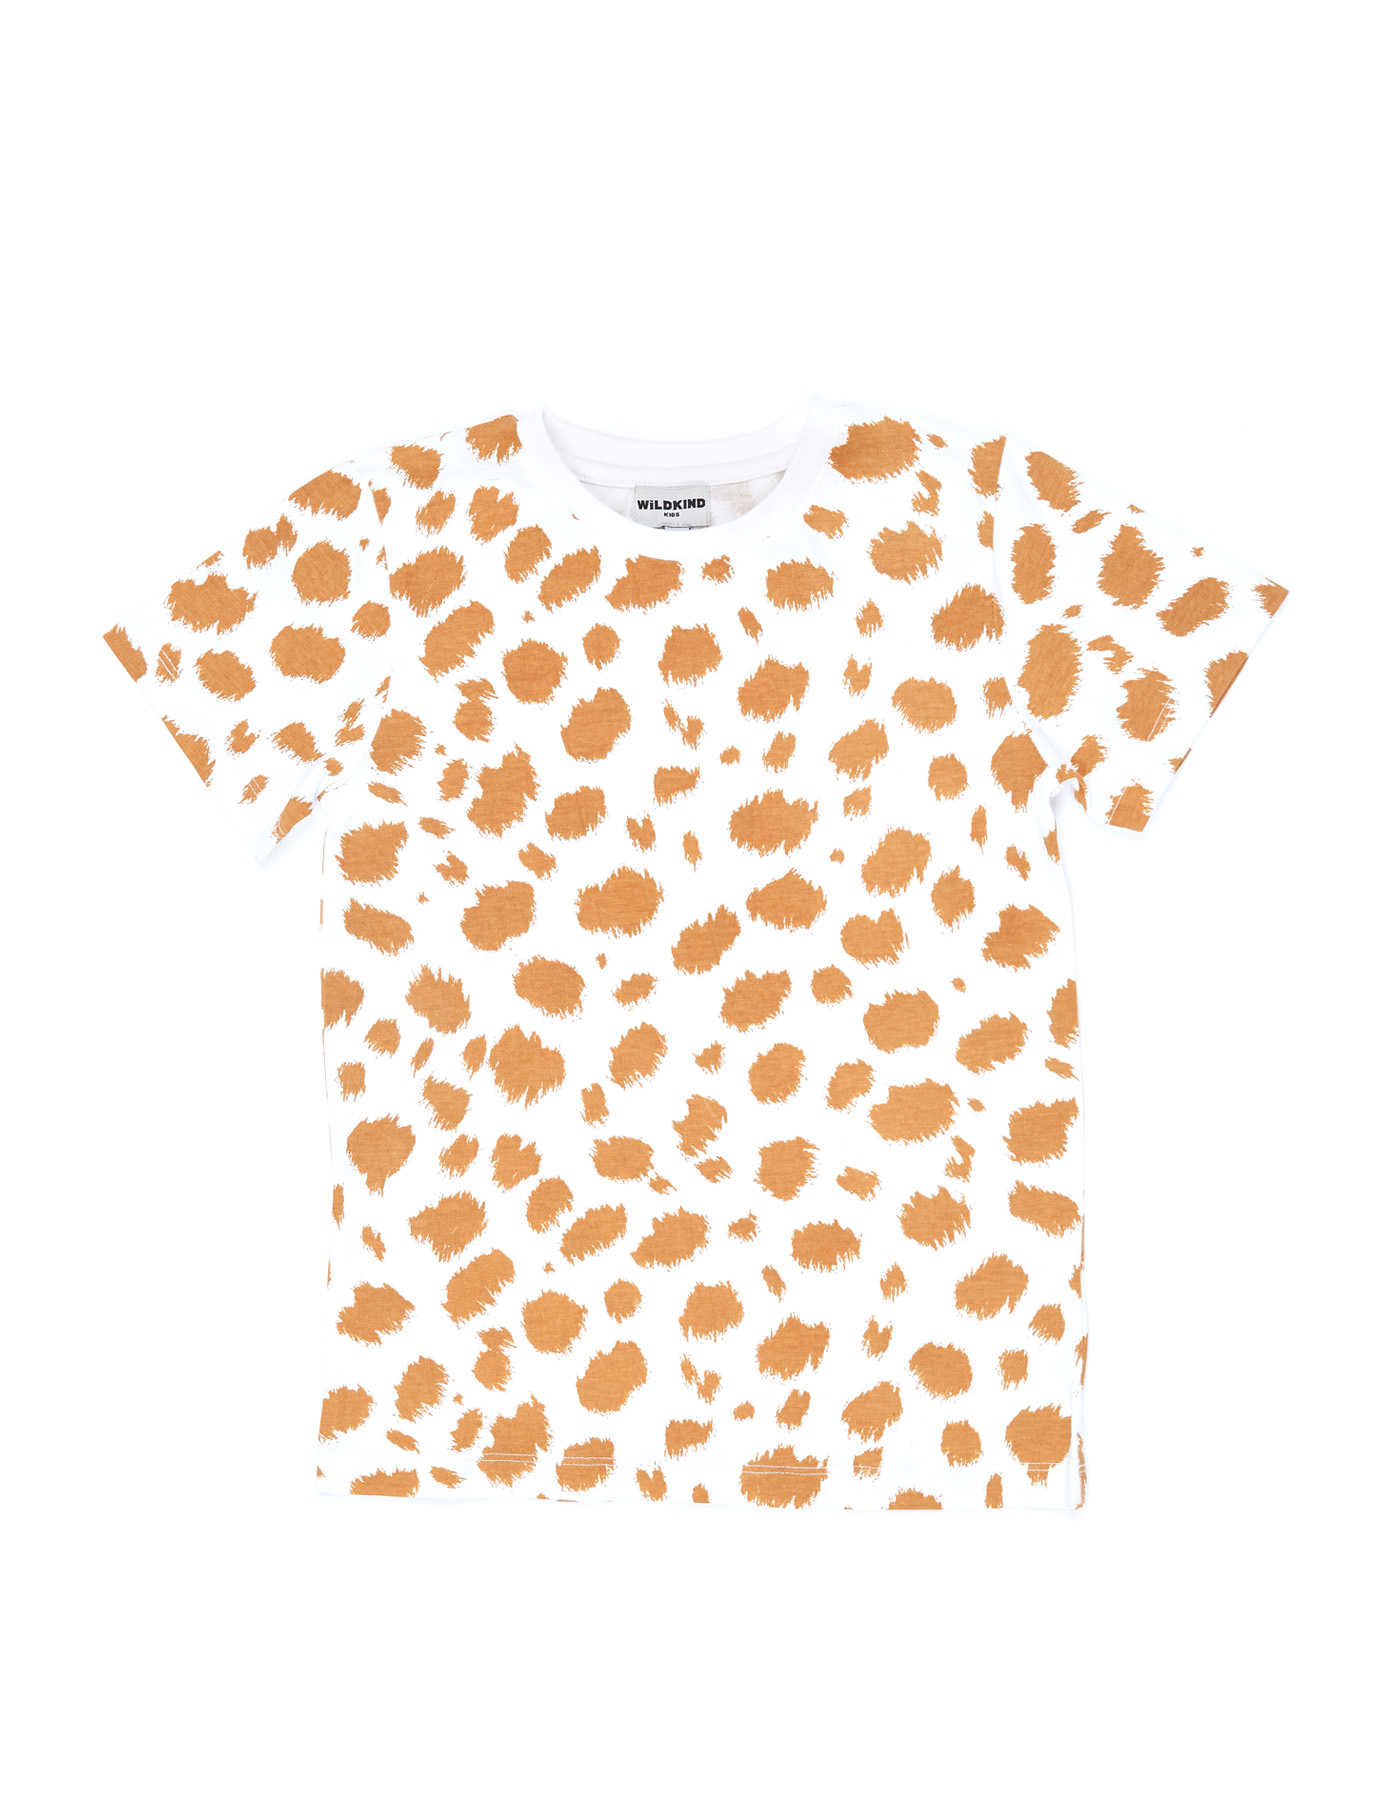 Beatrice_tshirt_cheetah_brown_29€.jpg